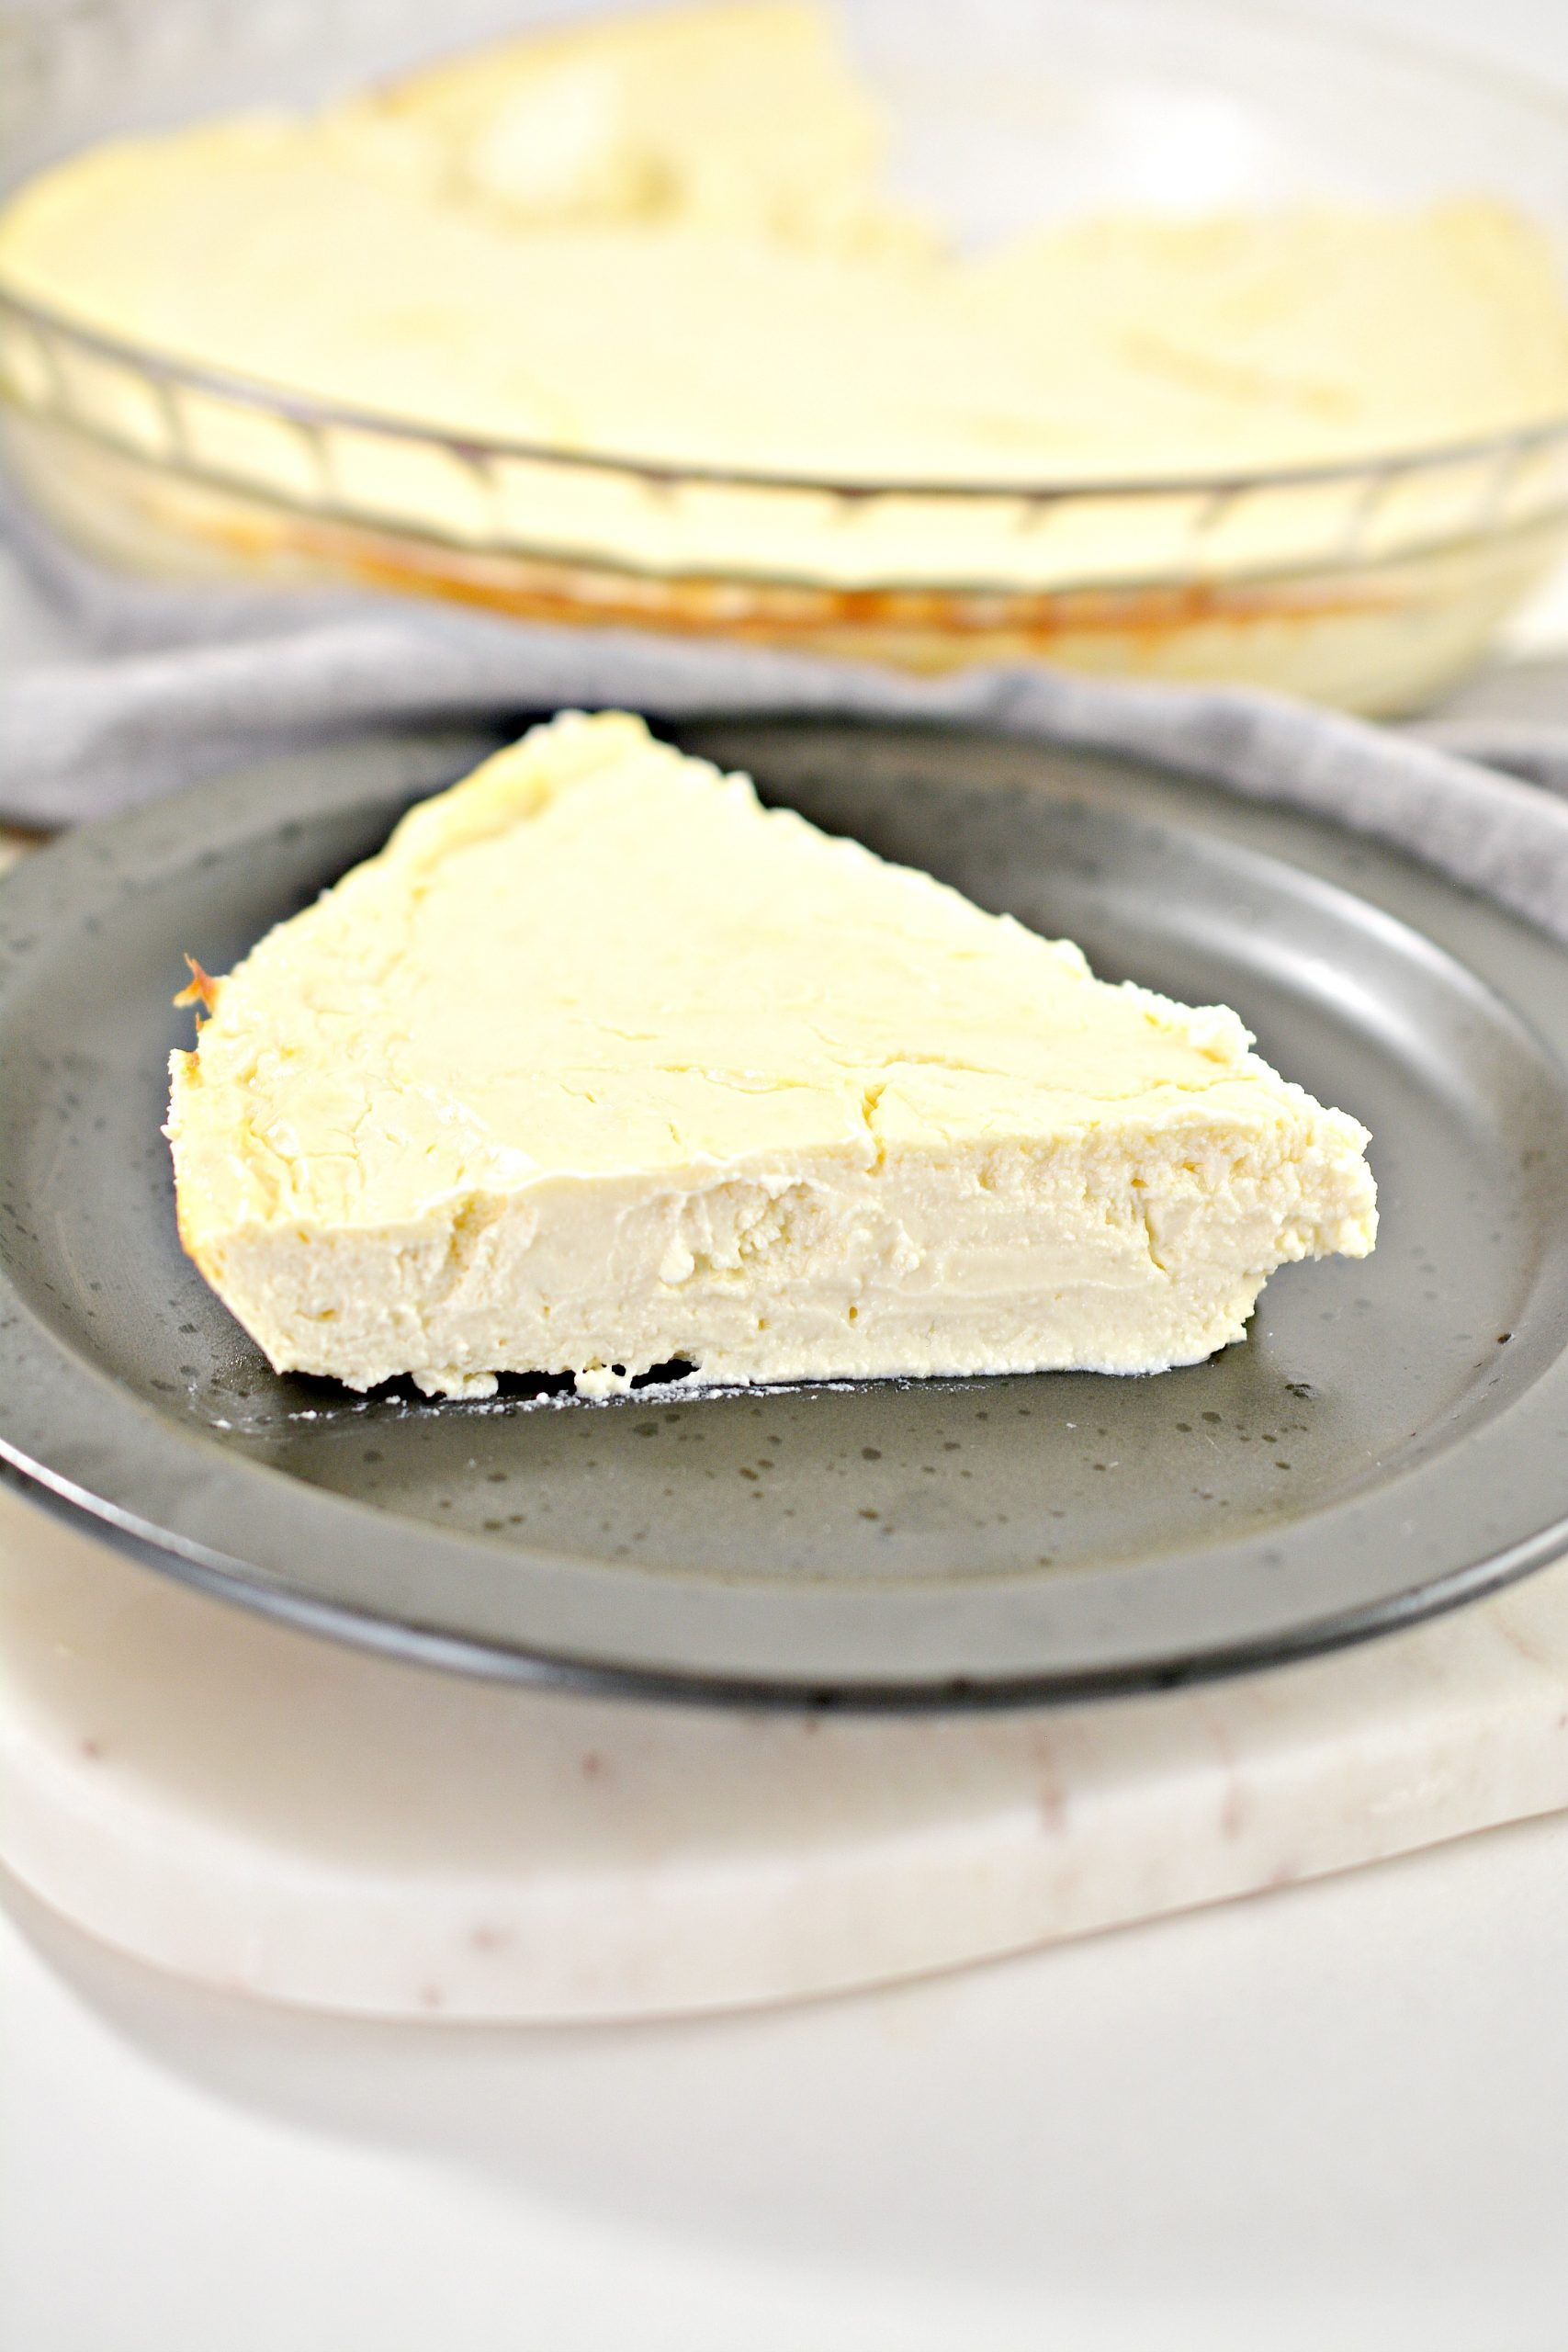 Weight Watchers Skinny Points Cheesecake